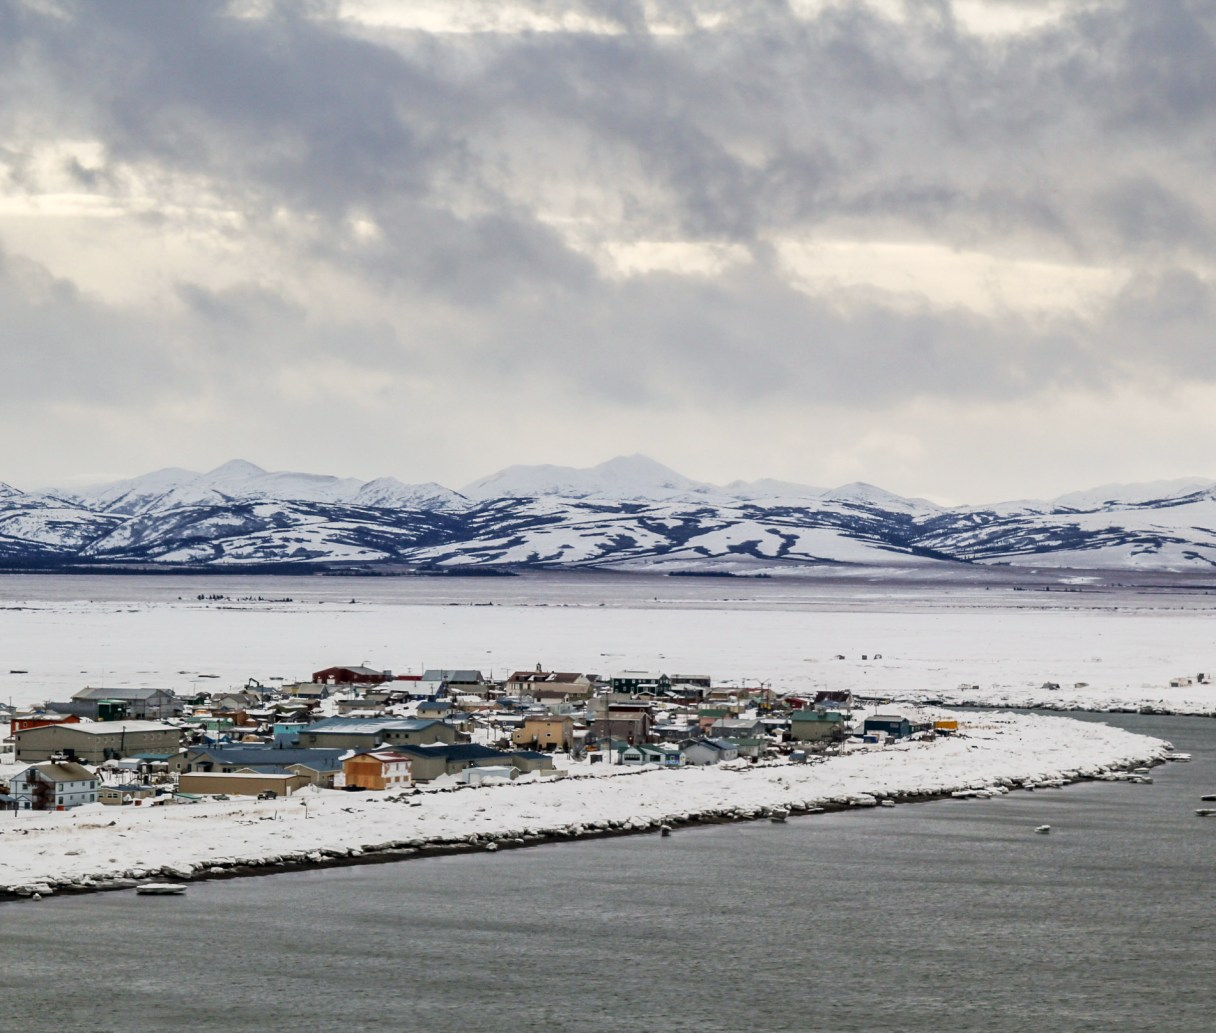 Aerial view of Unalakleet. There is mountains in the distance with water in the forefront. Buildings line the coastline. It is winter and snow is covering the ground.